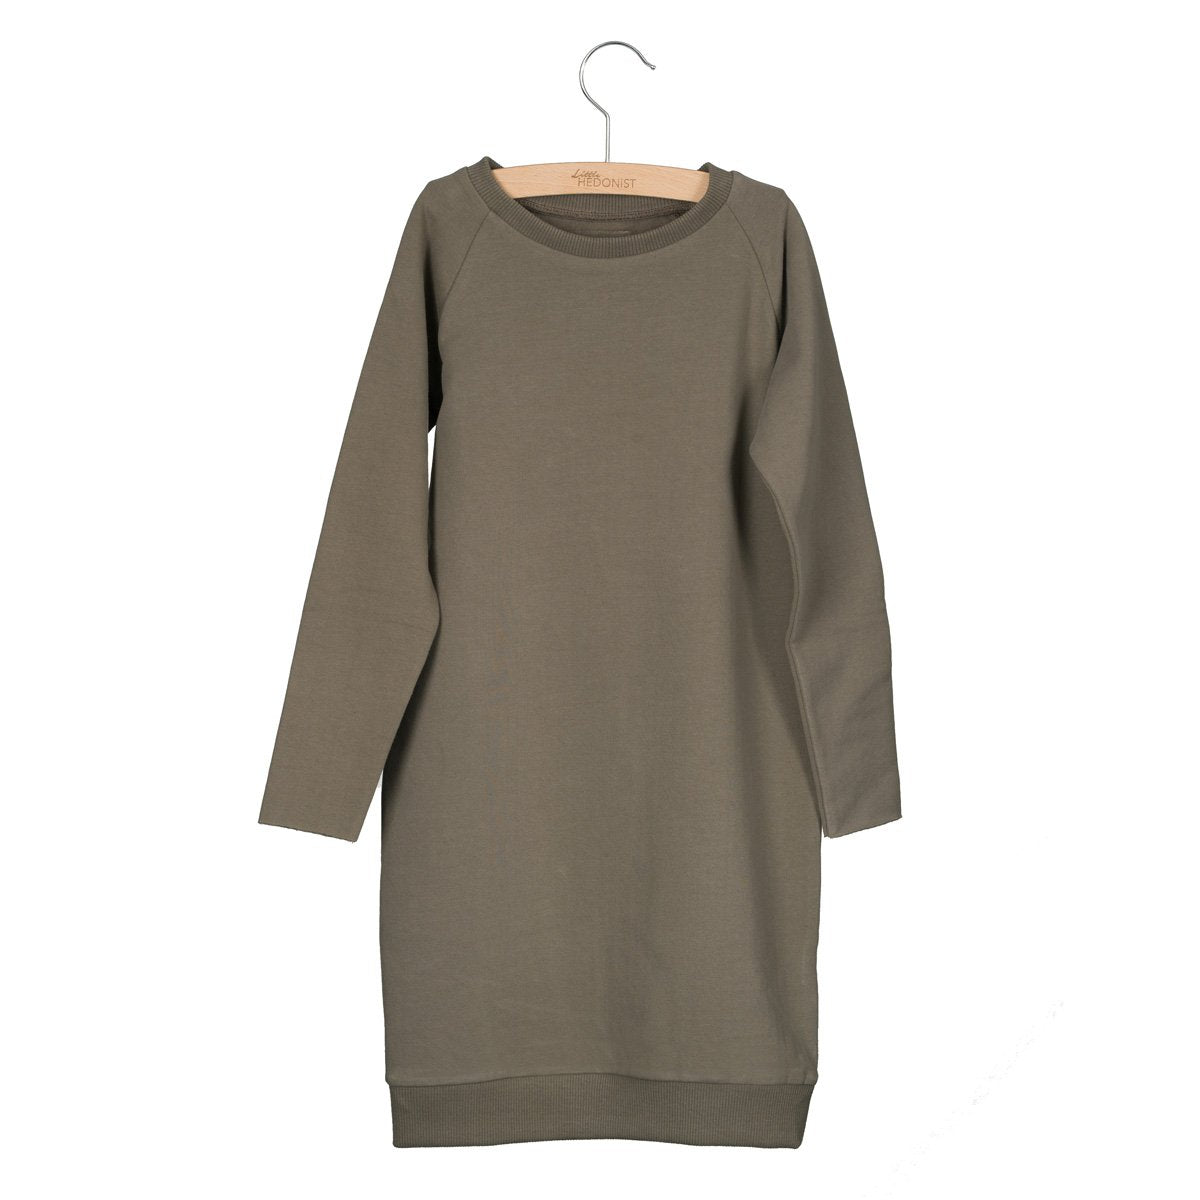 Sweatdress Ruth Warm Grey / Taupe